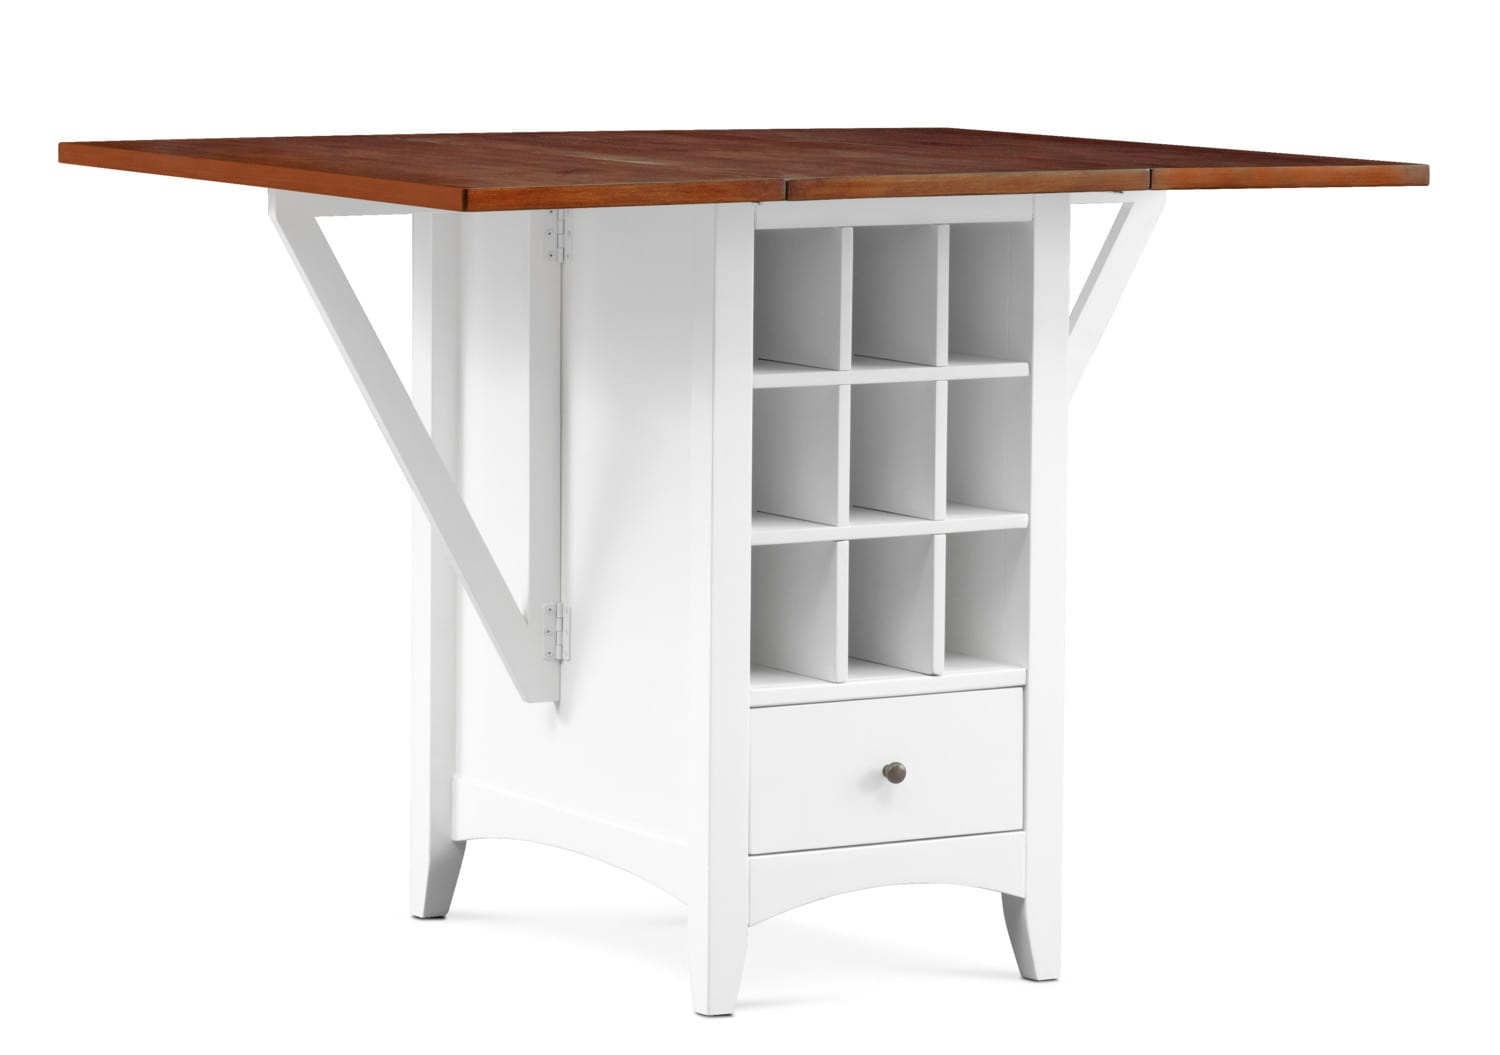 Dining Room Furniture   Porter Counter Height Island   Cherry